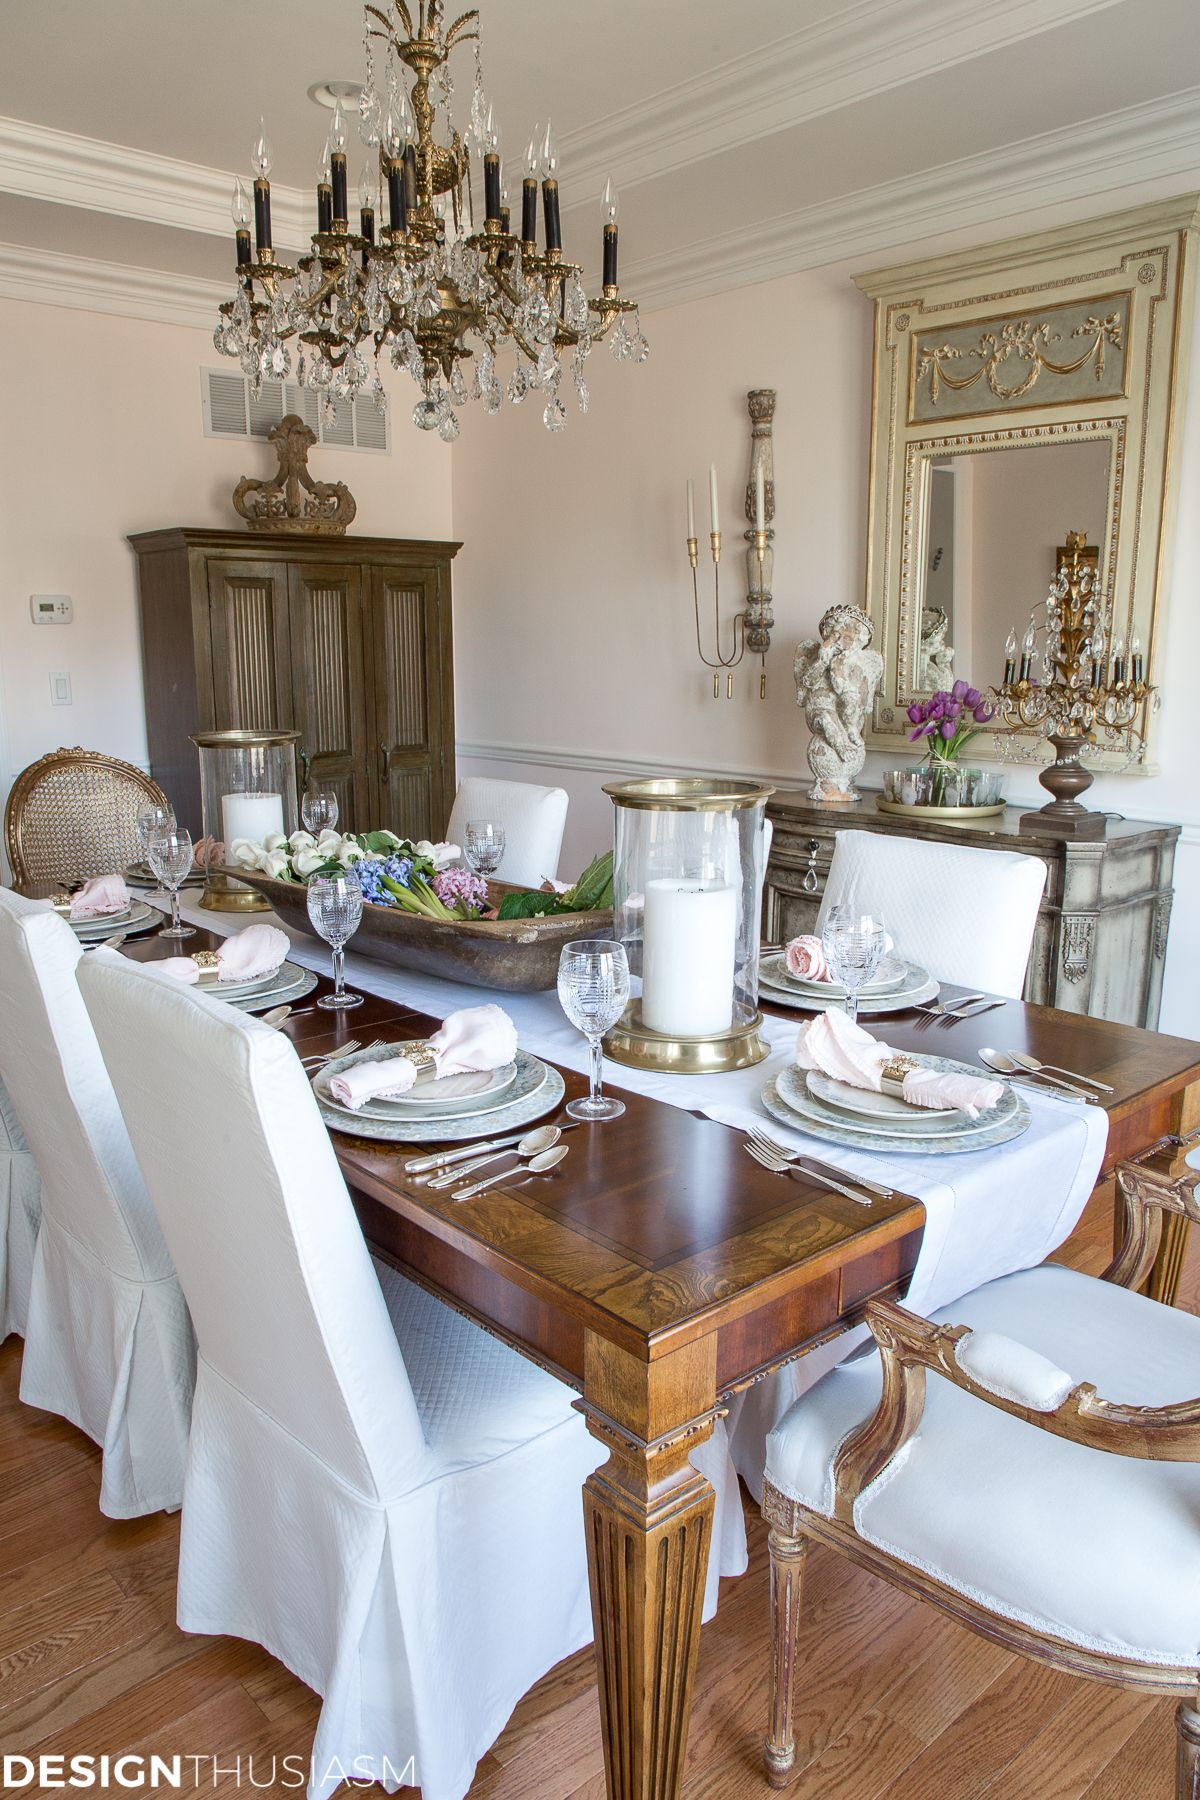 Simple Spring Decorating Ideas For The Dining Room Dining Room Table Centerpieces Dining Room Table Decor Dining Room French